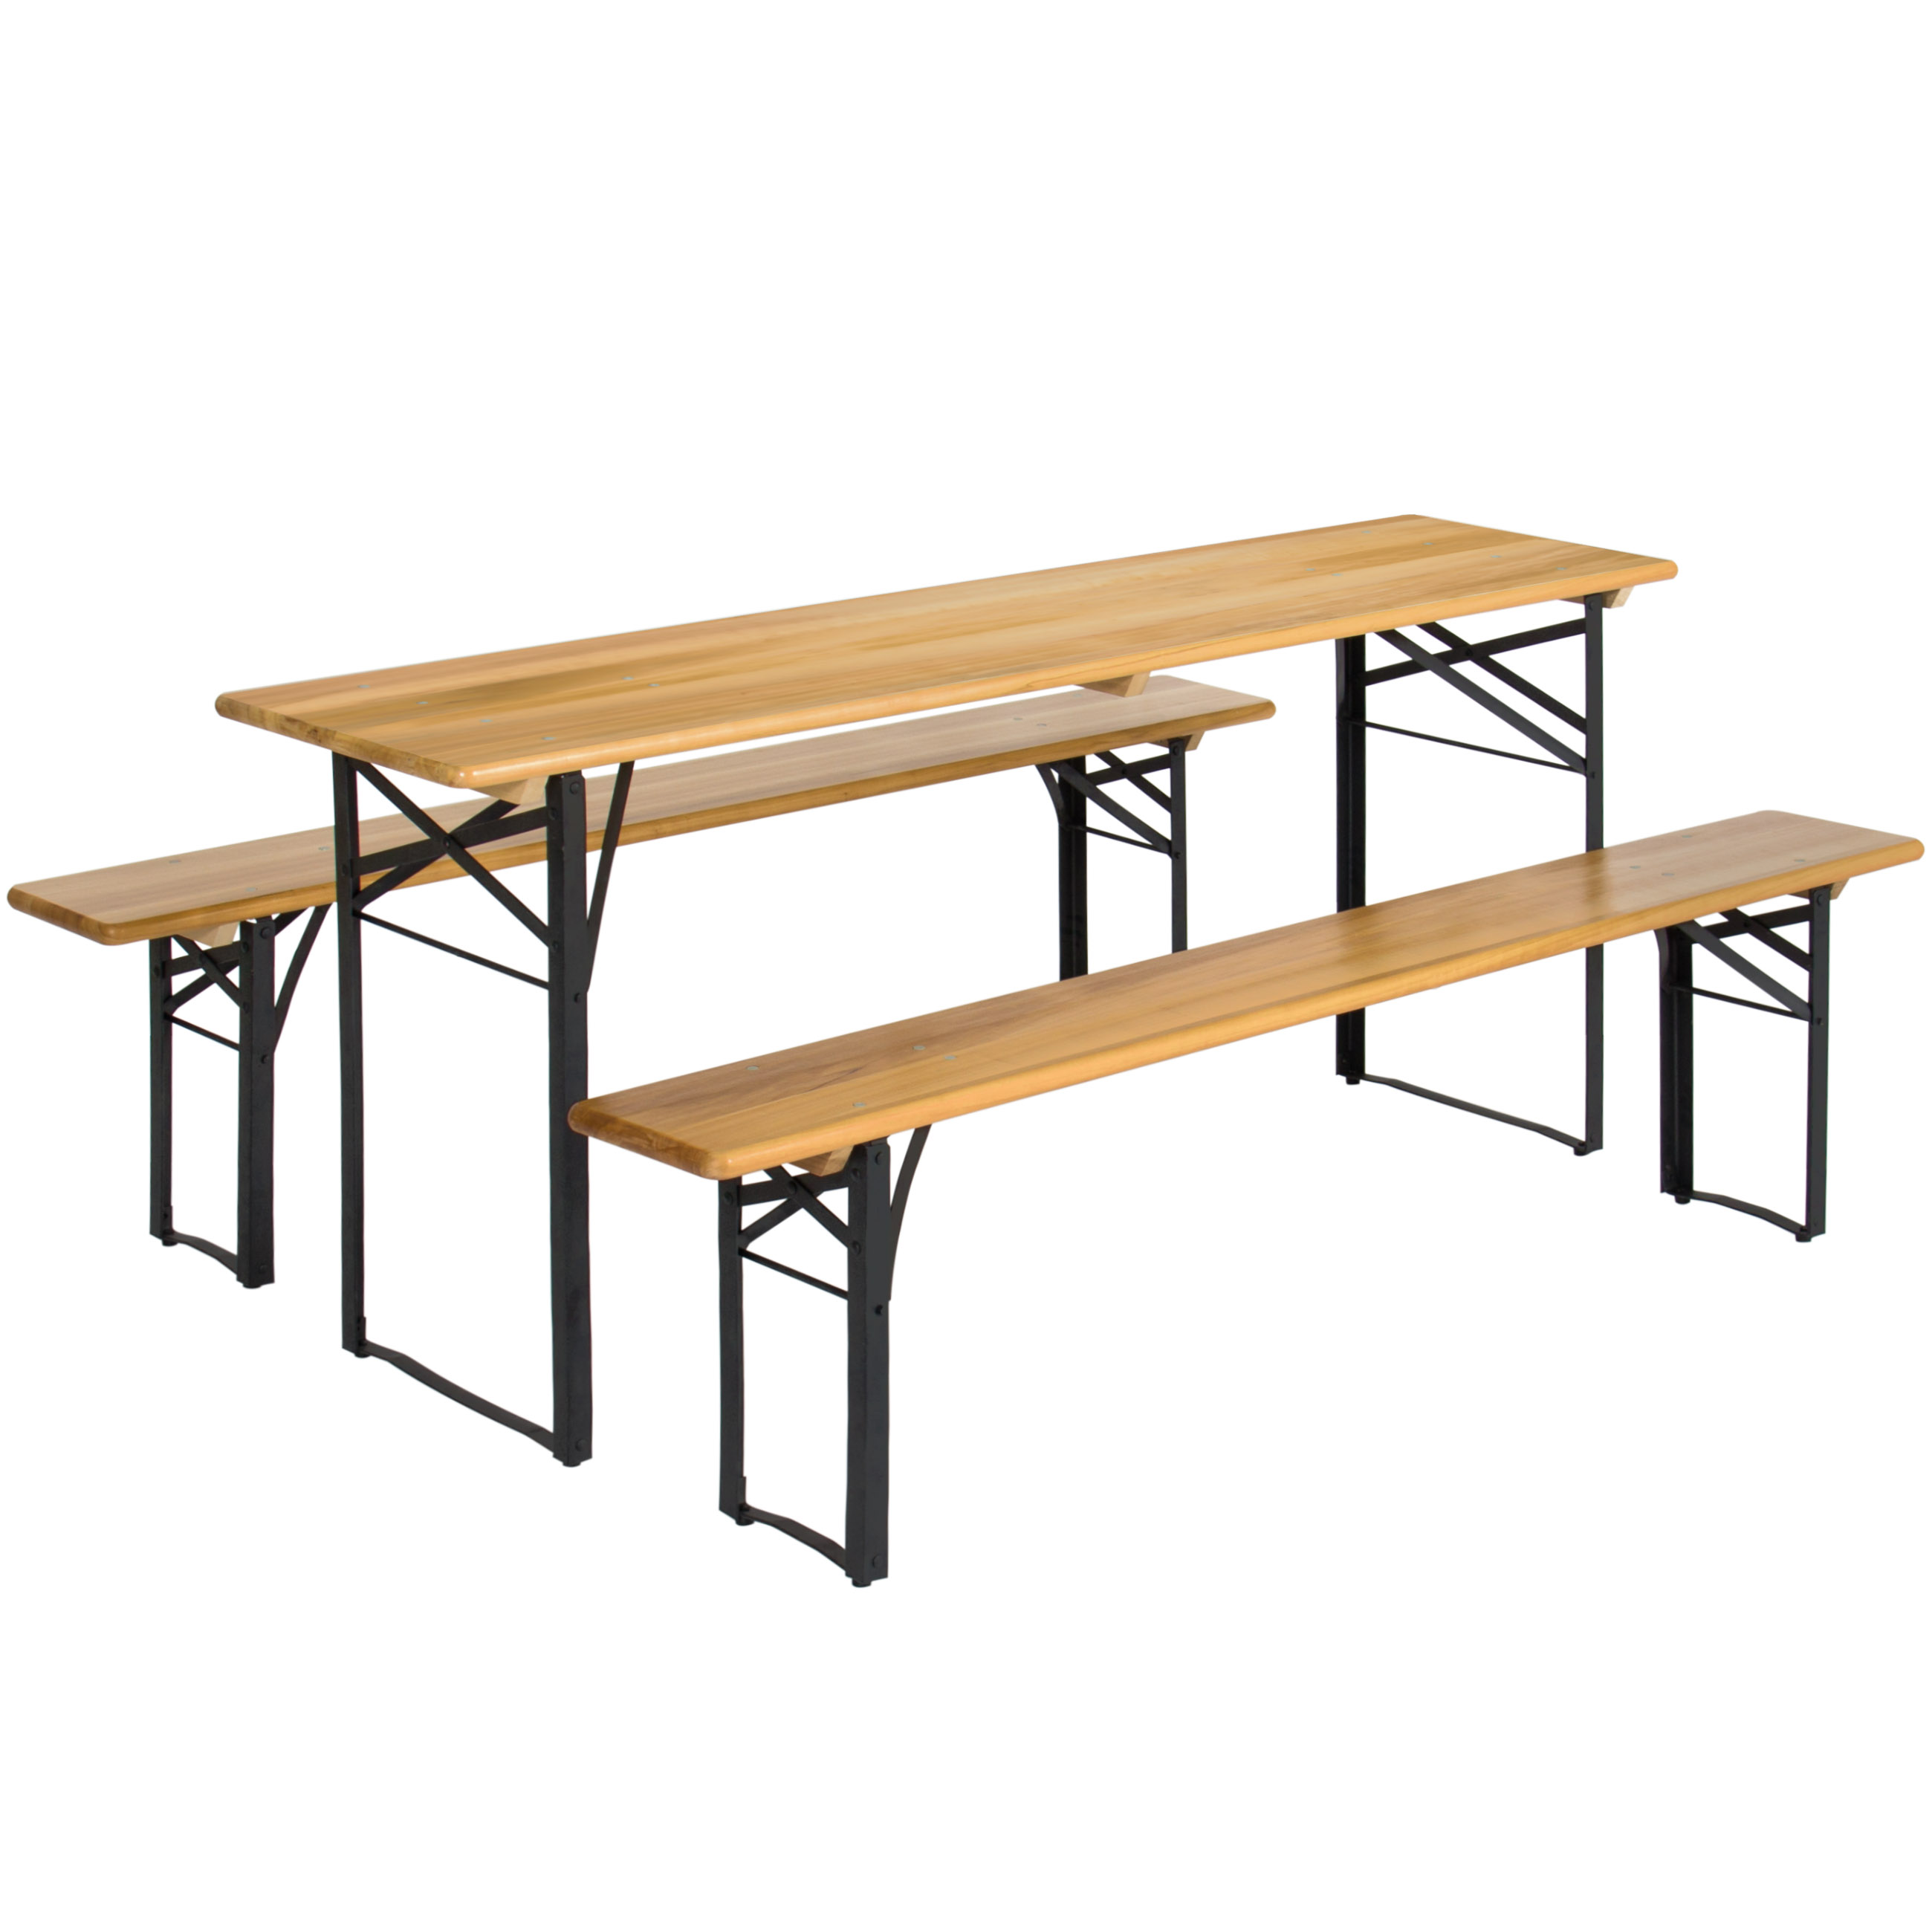 Best Choice Products Portable 3 Piece Folding Picnic Table Set W/ Wooden Tabletop  sc 1 st  Walmart.com & Best Choice Products Portable 3 Piece Folding Picnic Table Set W ...